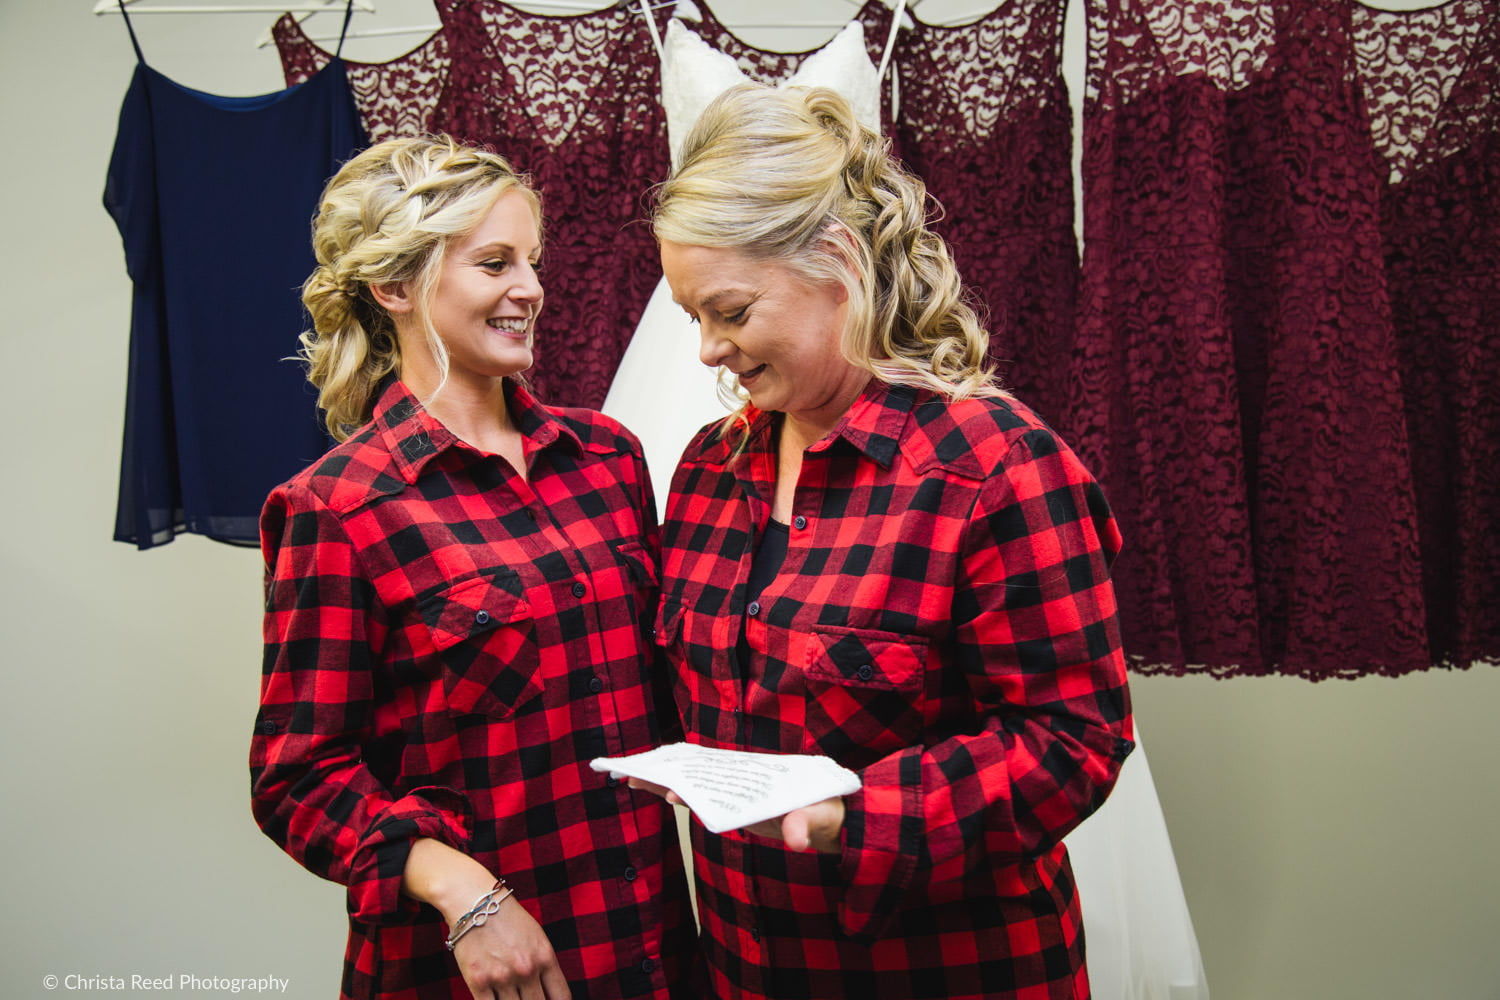 belle plaine minnesota bride gives her mother a gift before the wedding